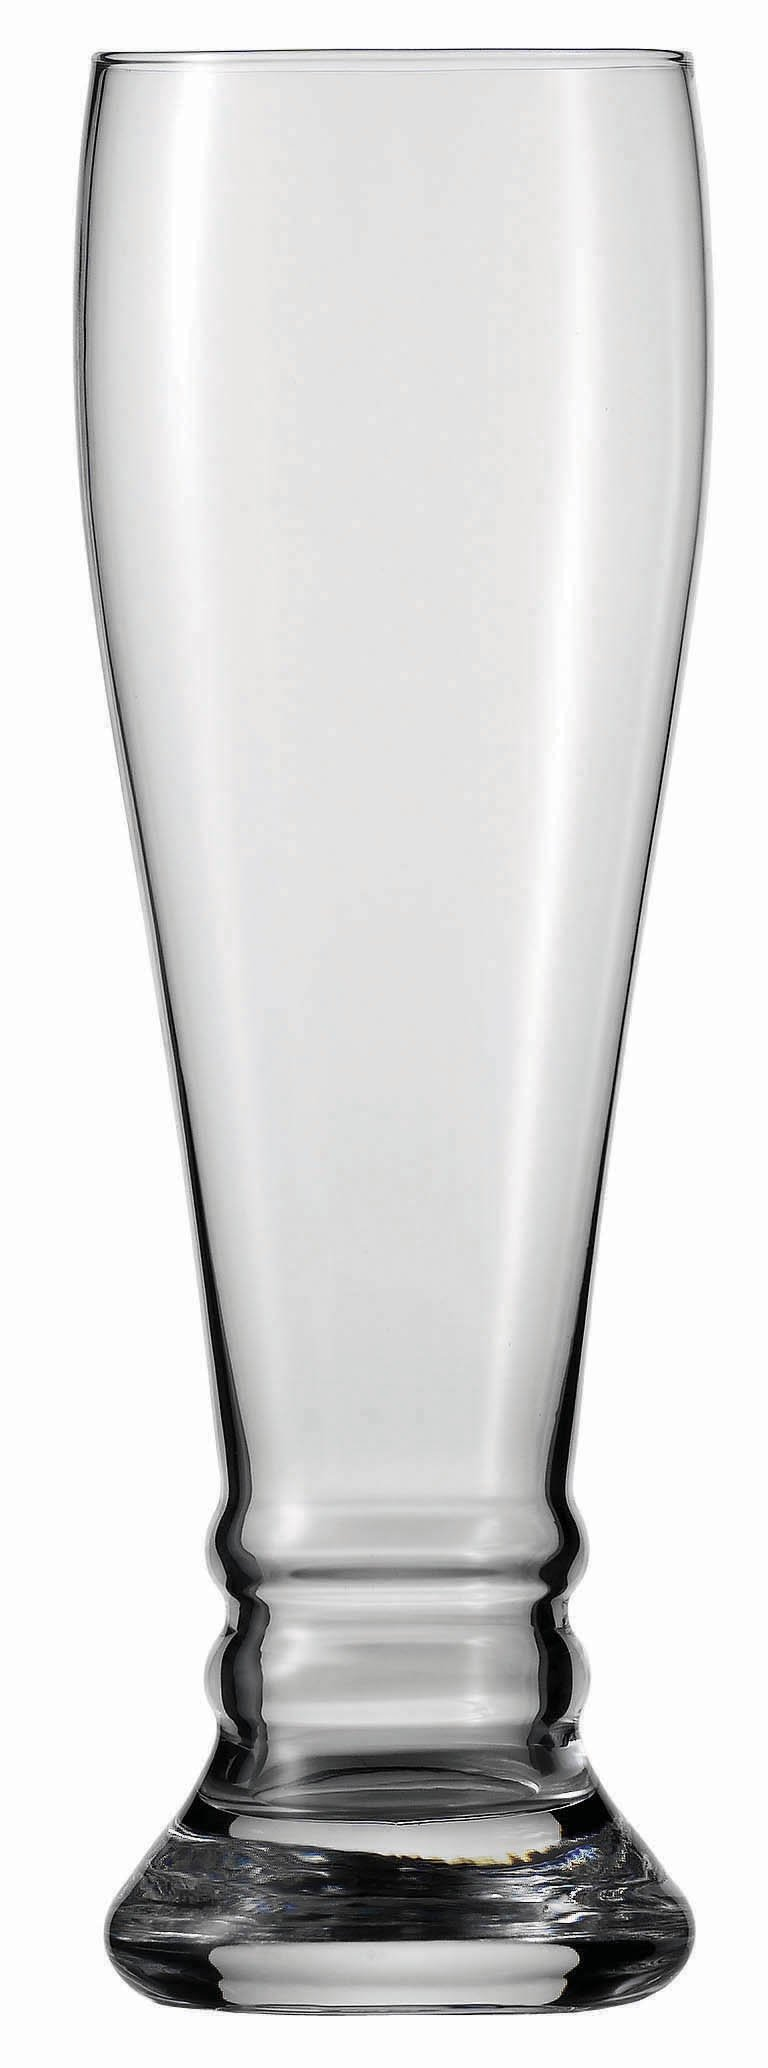 Schott Zwiesel Tritan Crystal Glass Bavaria Beer Glass, 22-Ounce, Set of 6